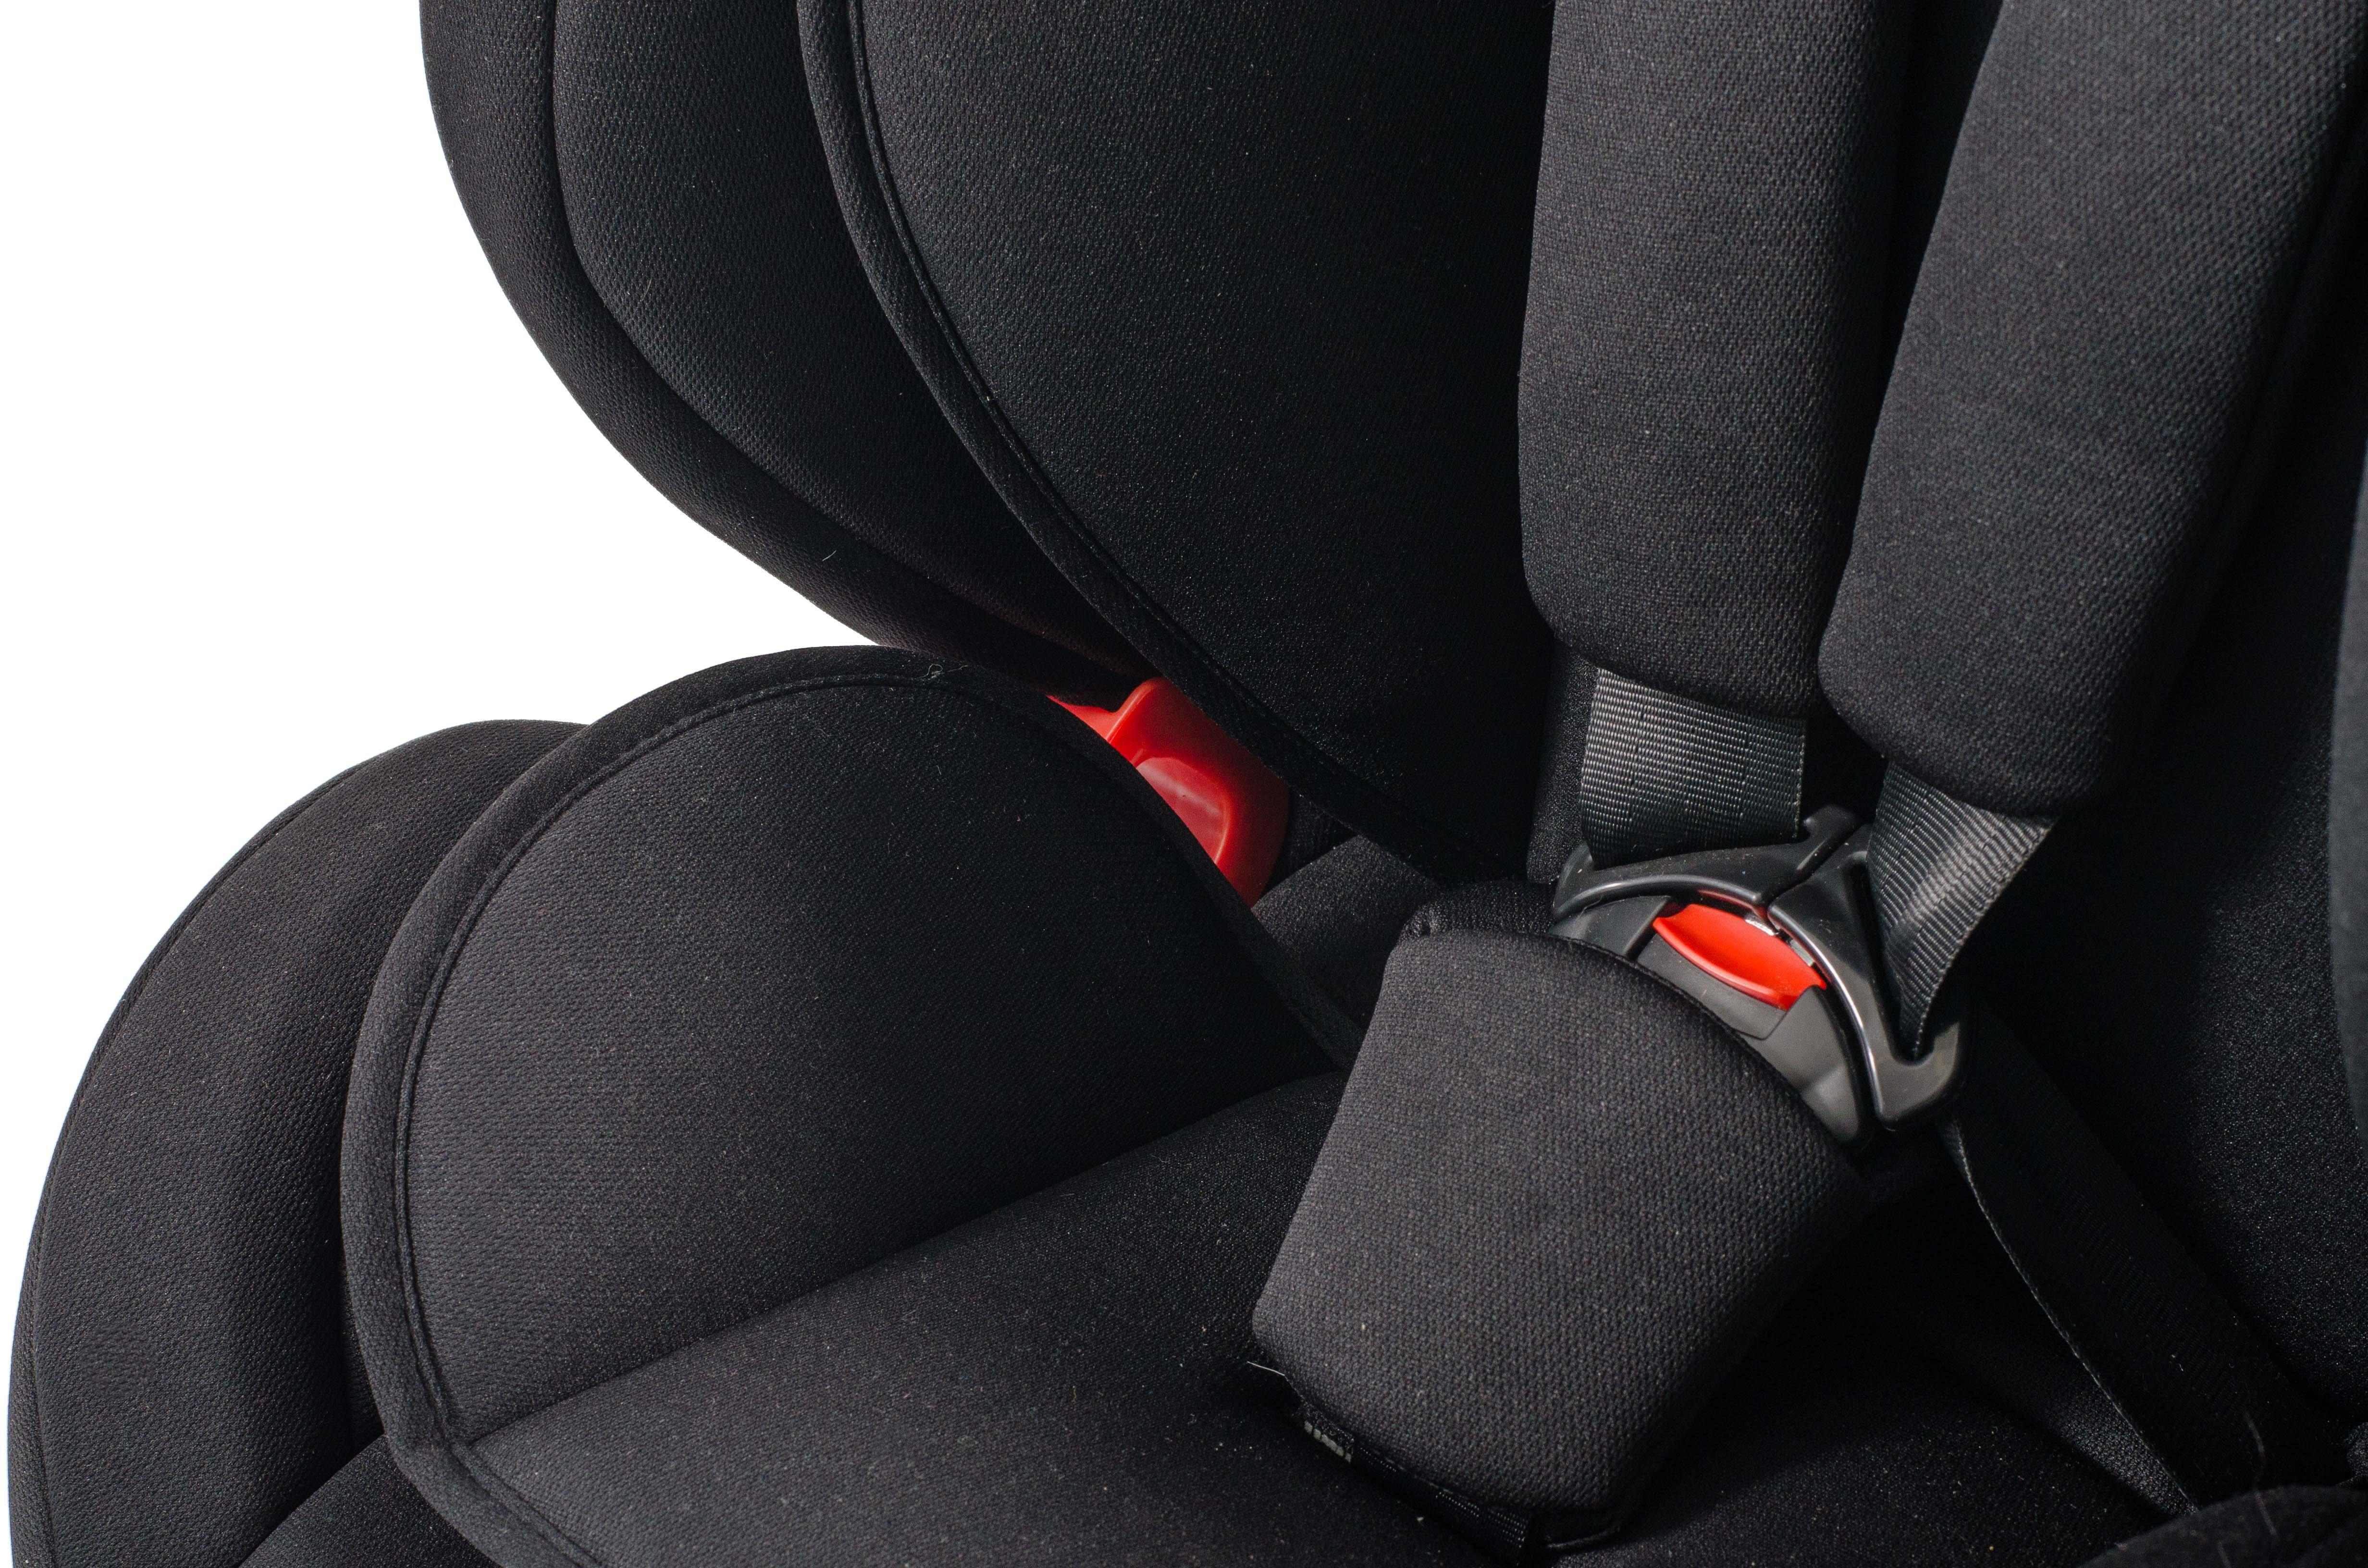 Top Tether IsoFix Car Seat (Group 1,2,3)